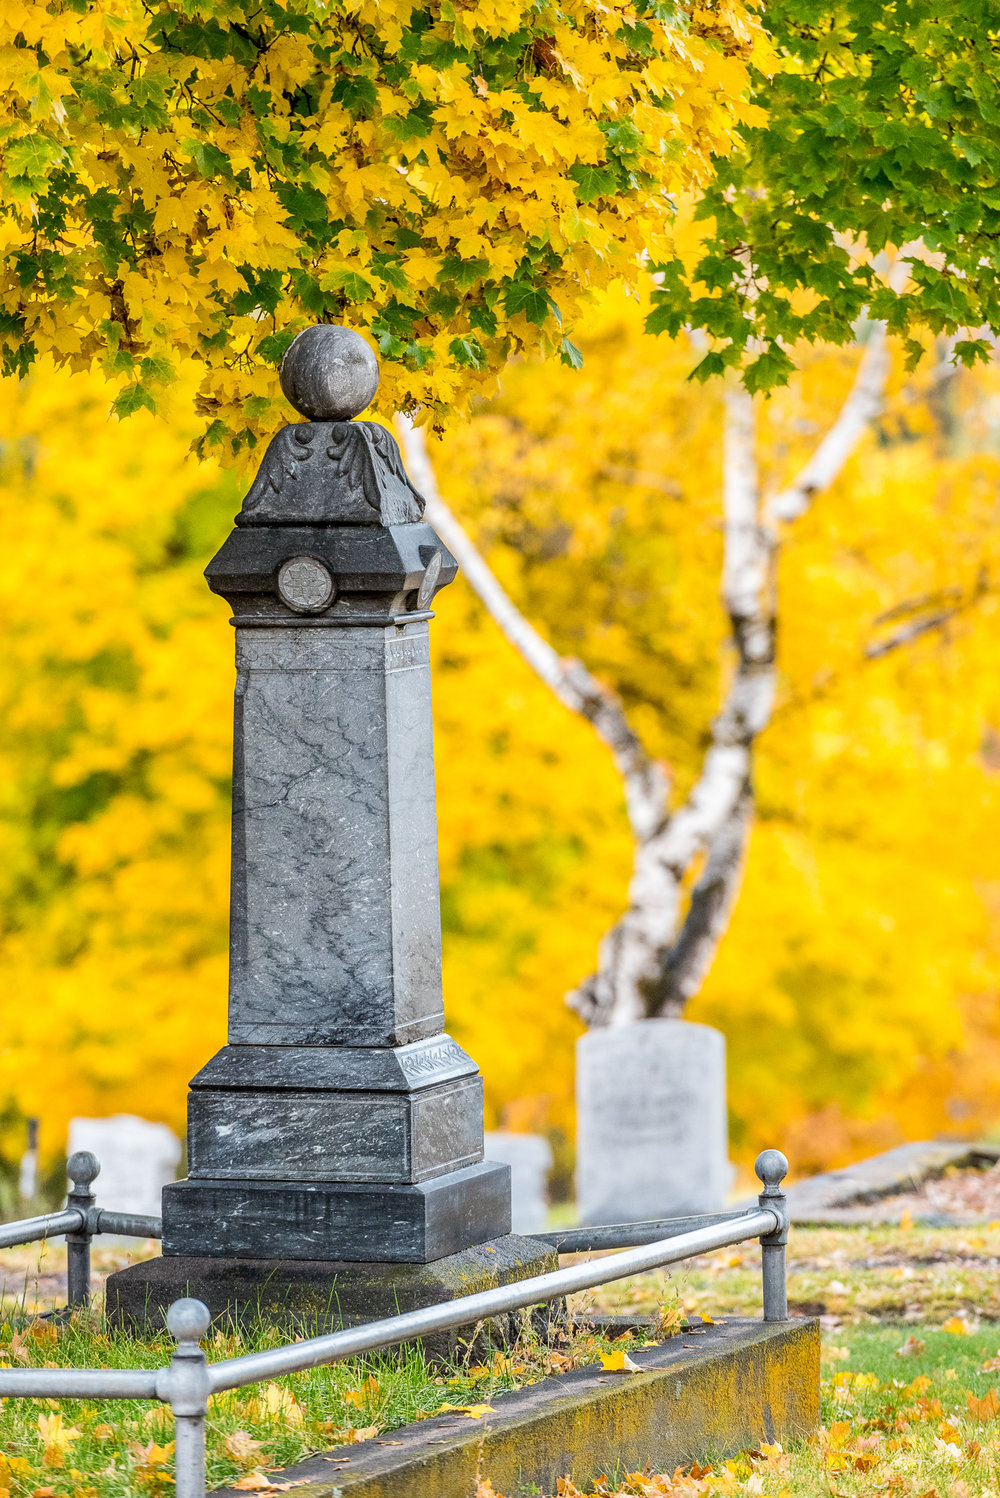 An opulent marker in the historic Linkville Cemetery, Klamath Falls, Ore. Image: Brian Gailey